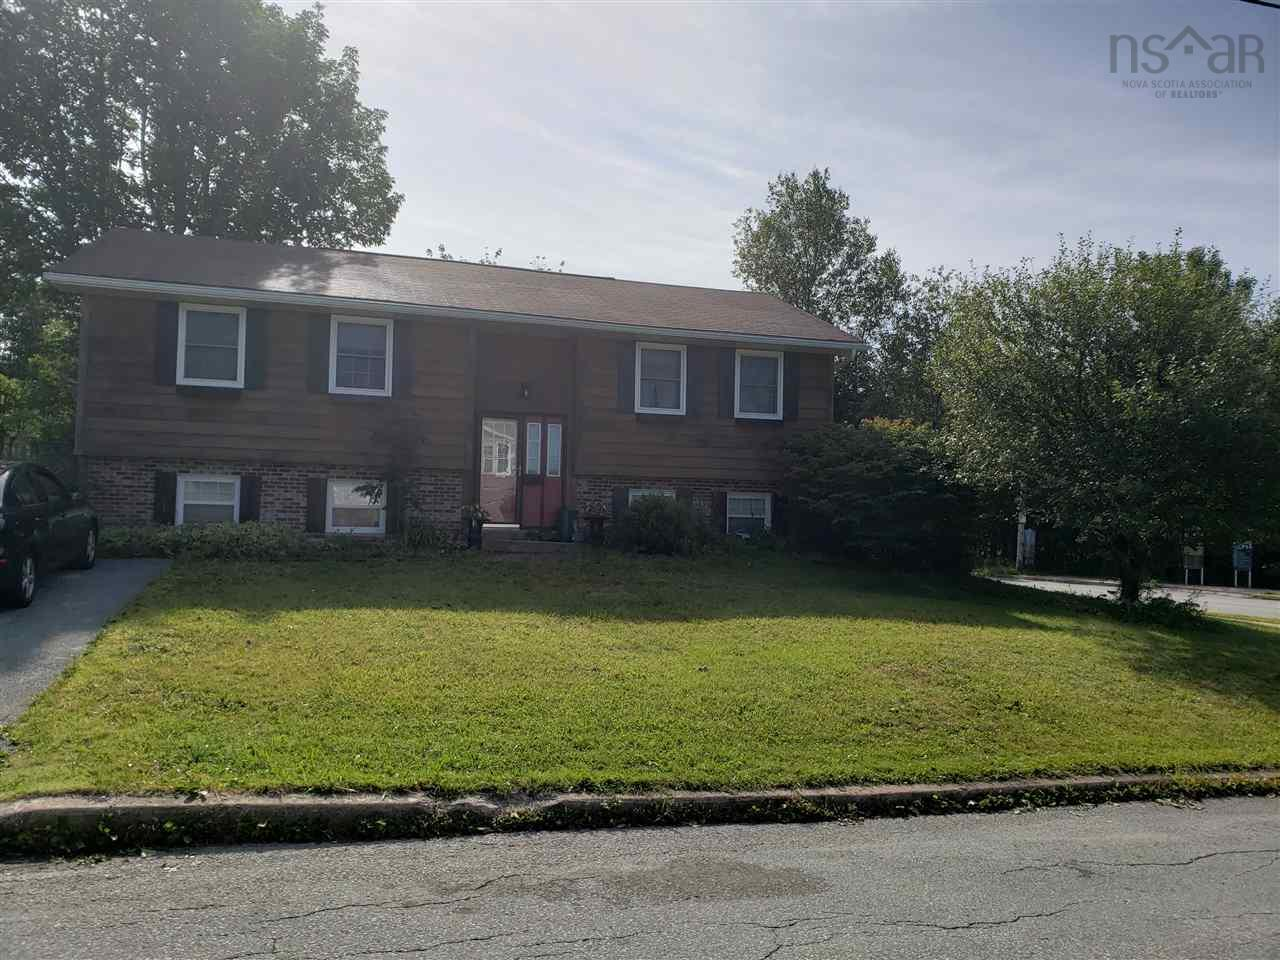 1 CAVENDISH DR, LOWER SACKVILLE, NS Photo 1